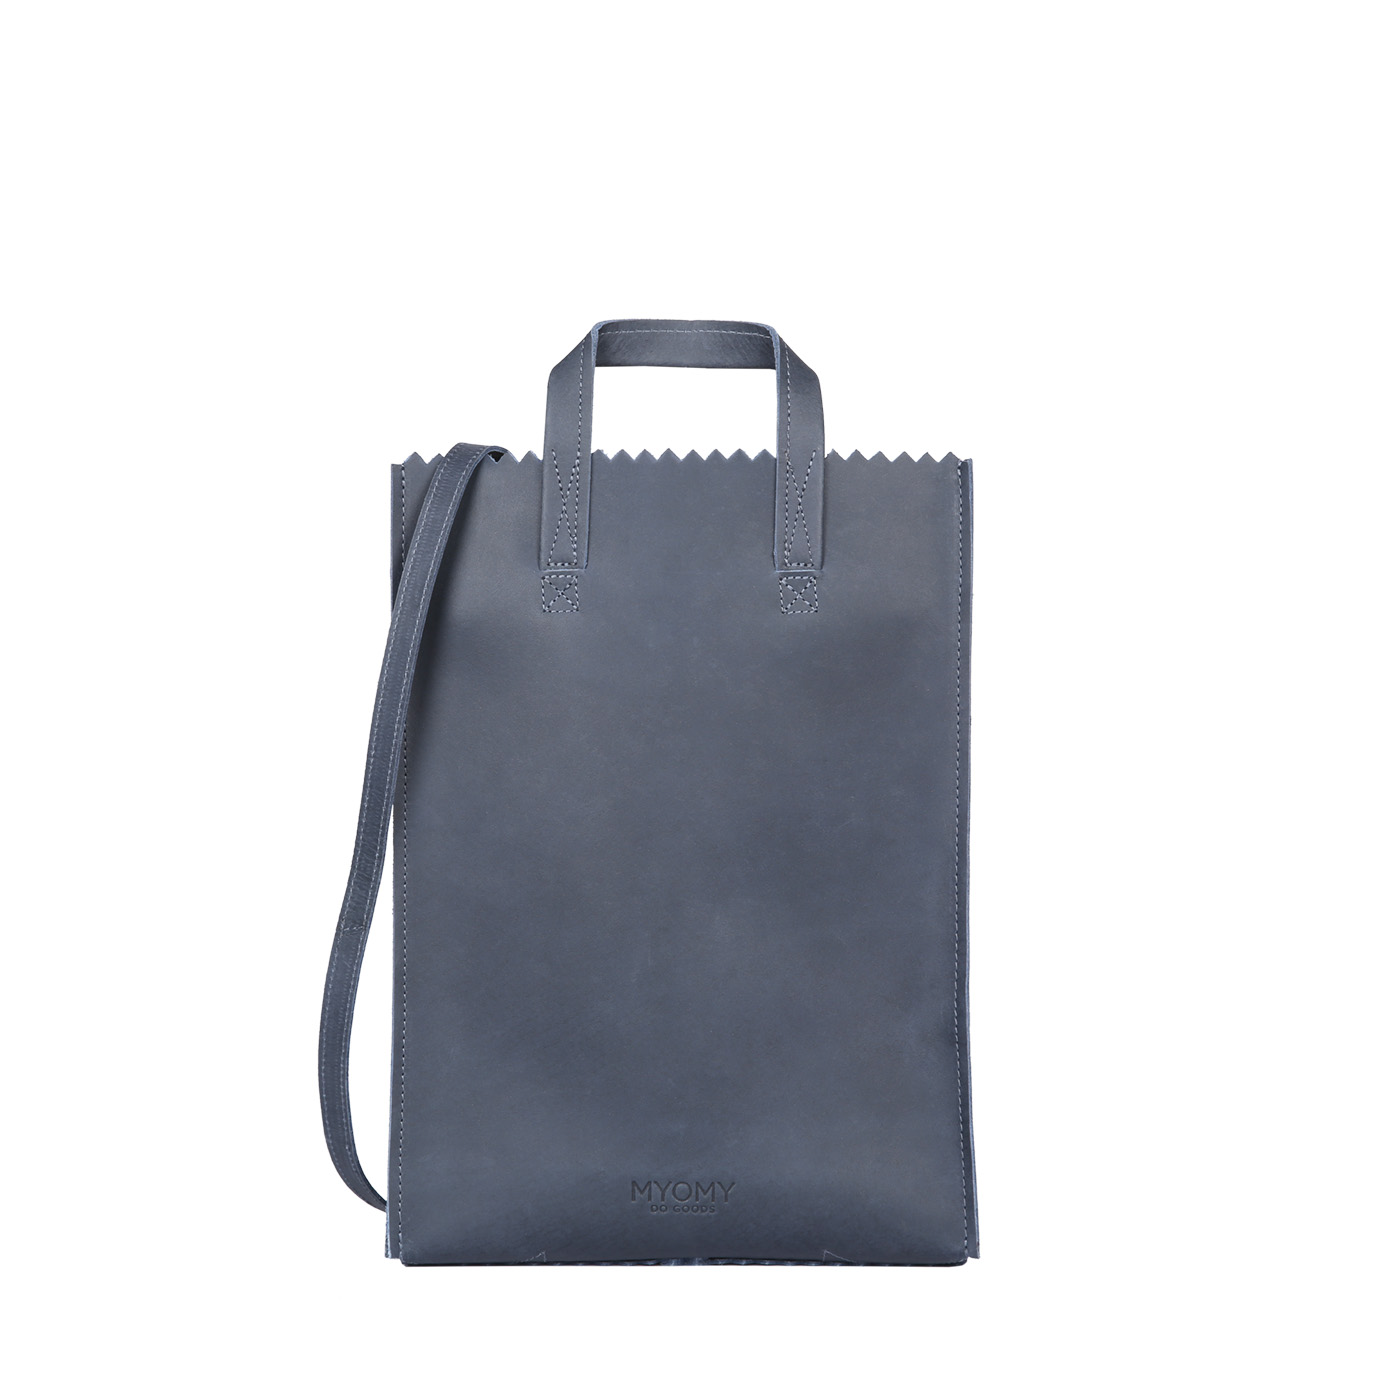 MY PAPER BAG Handy short handle – hunter navy blue